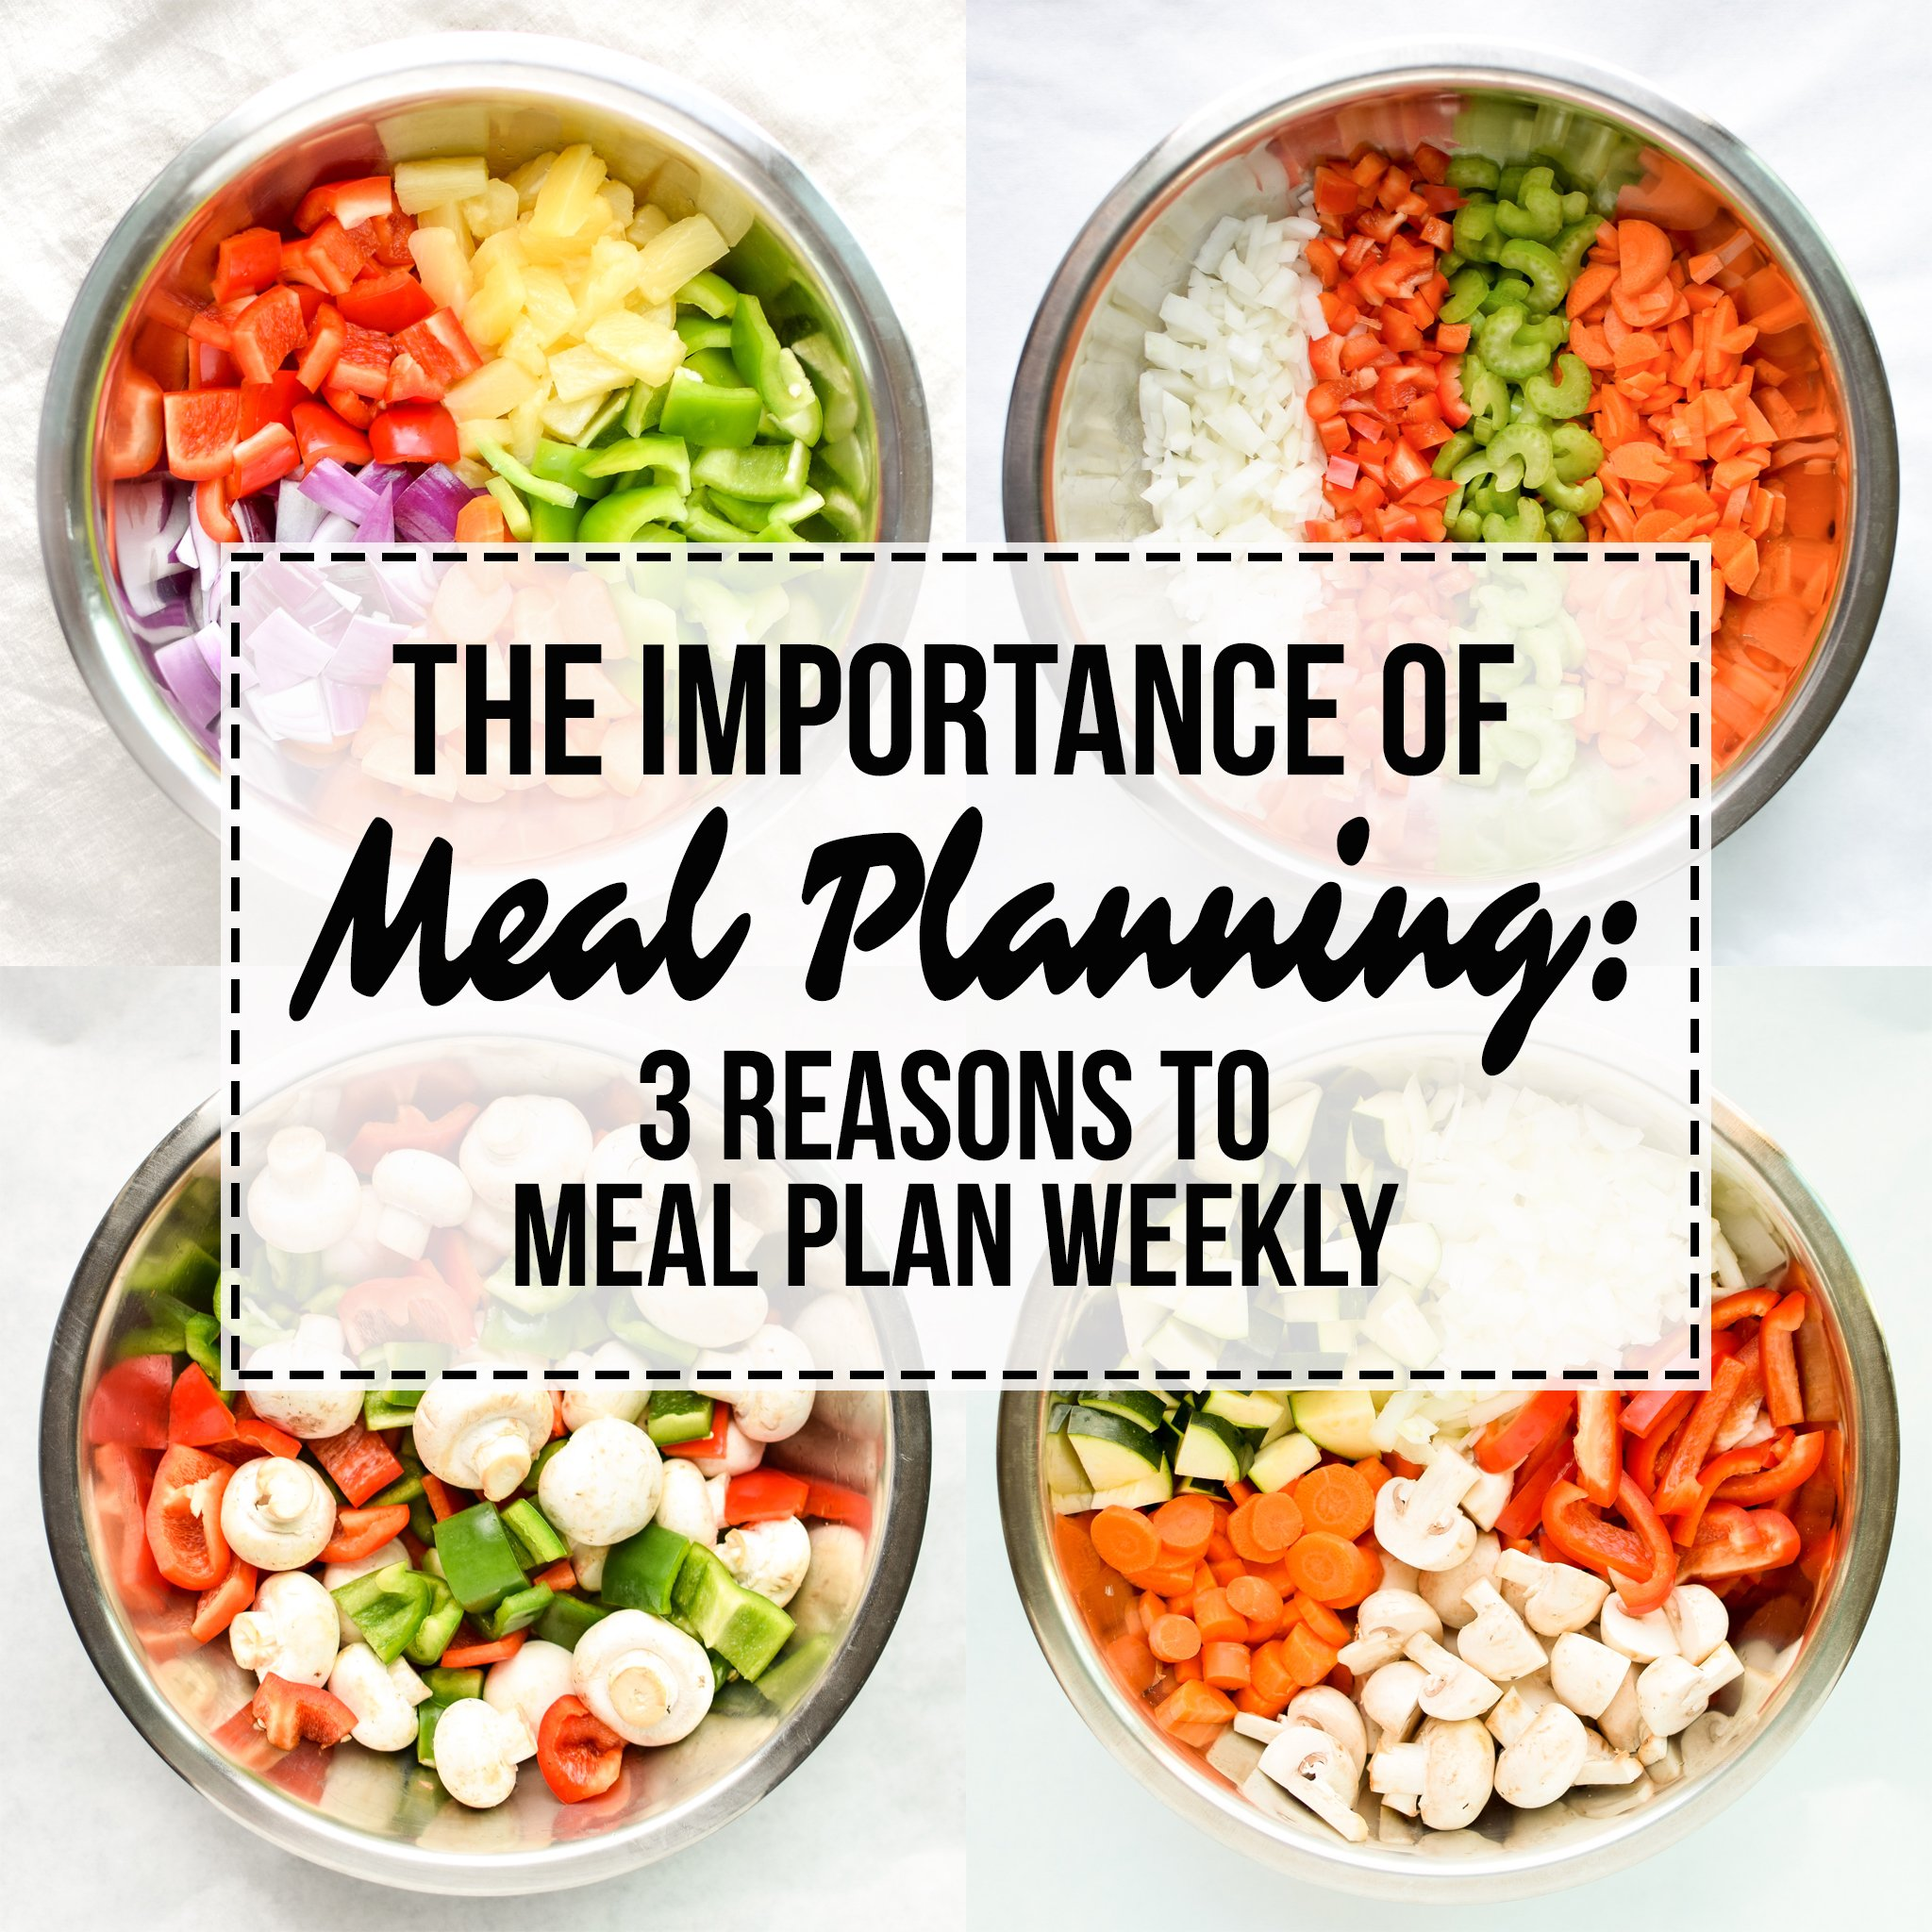 the importance of meal planning  reasons to meal plan weekly